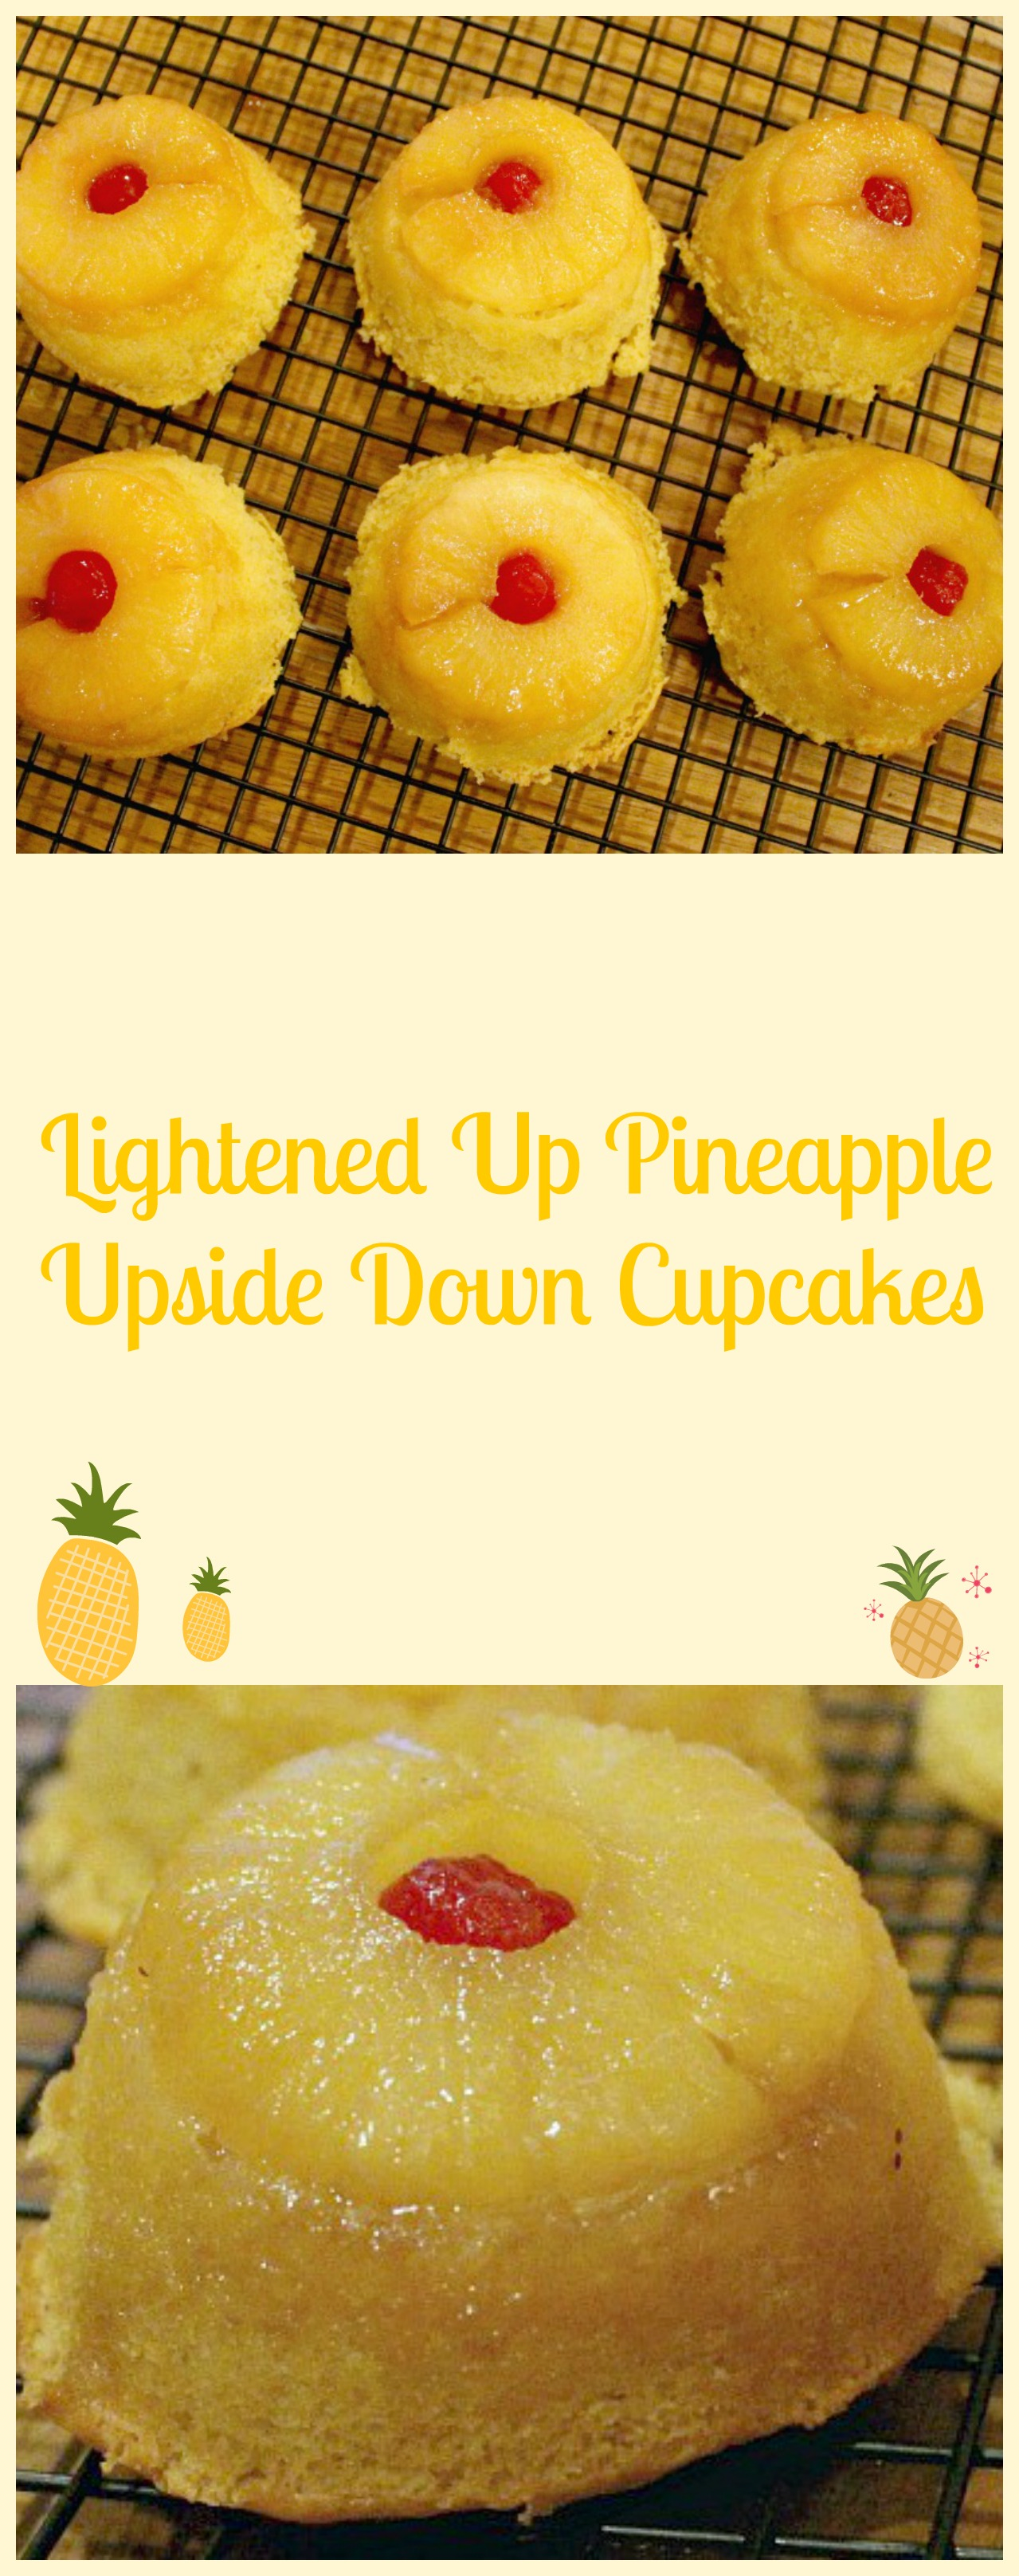 Lightened Up Pineapple Upside Down Cupcakes Pams Daily Dish